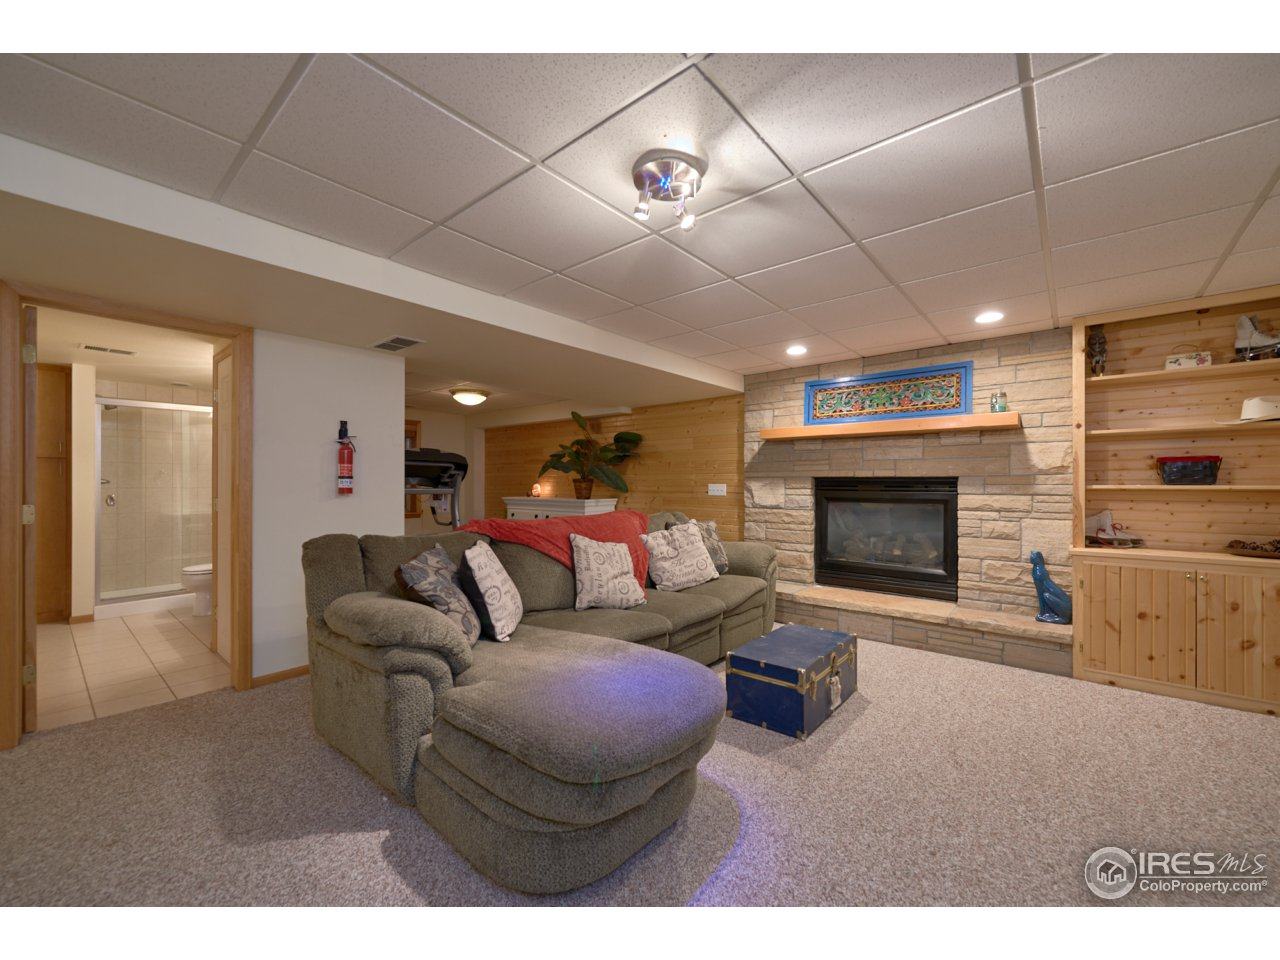 Basement Rec room w/ workout area & gas fireplace